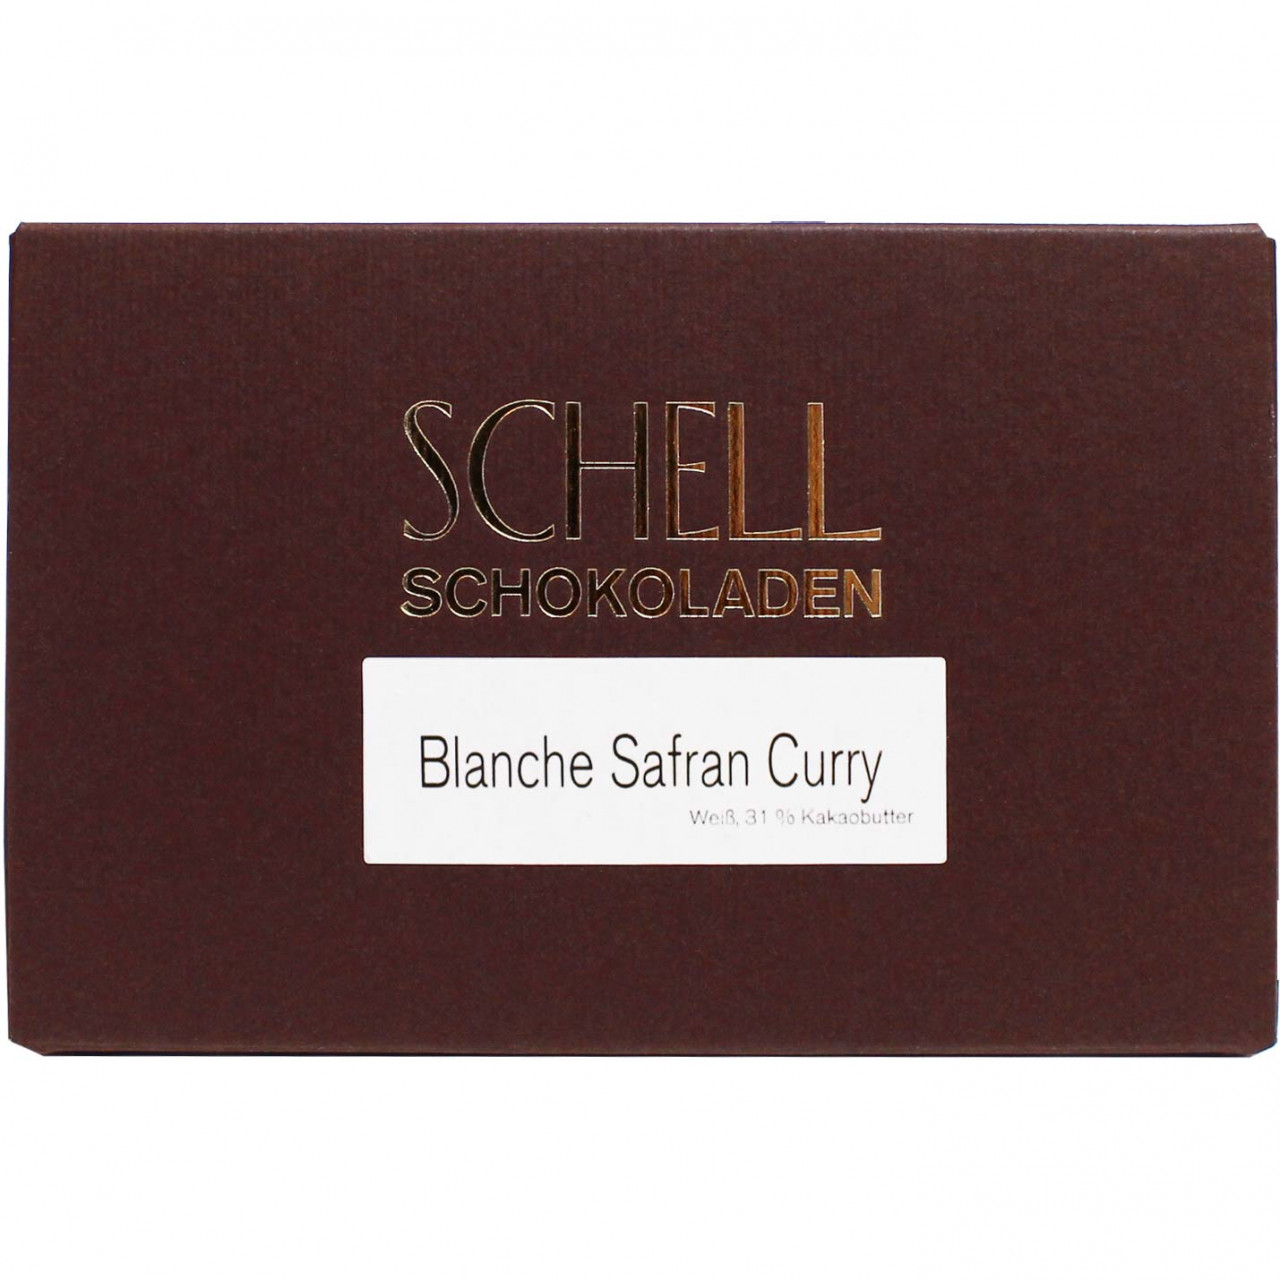 Blanche Saffron Curry 28% - white chocolate - Bar of Chocolate, Germany, german chocolate, Chocolate with spices - Chocolats-De-Luxe